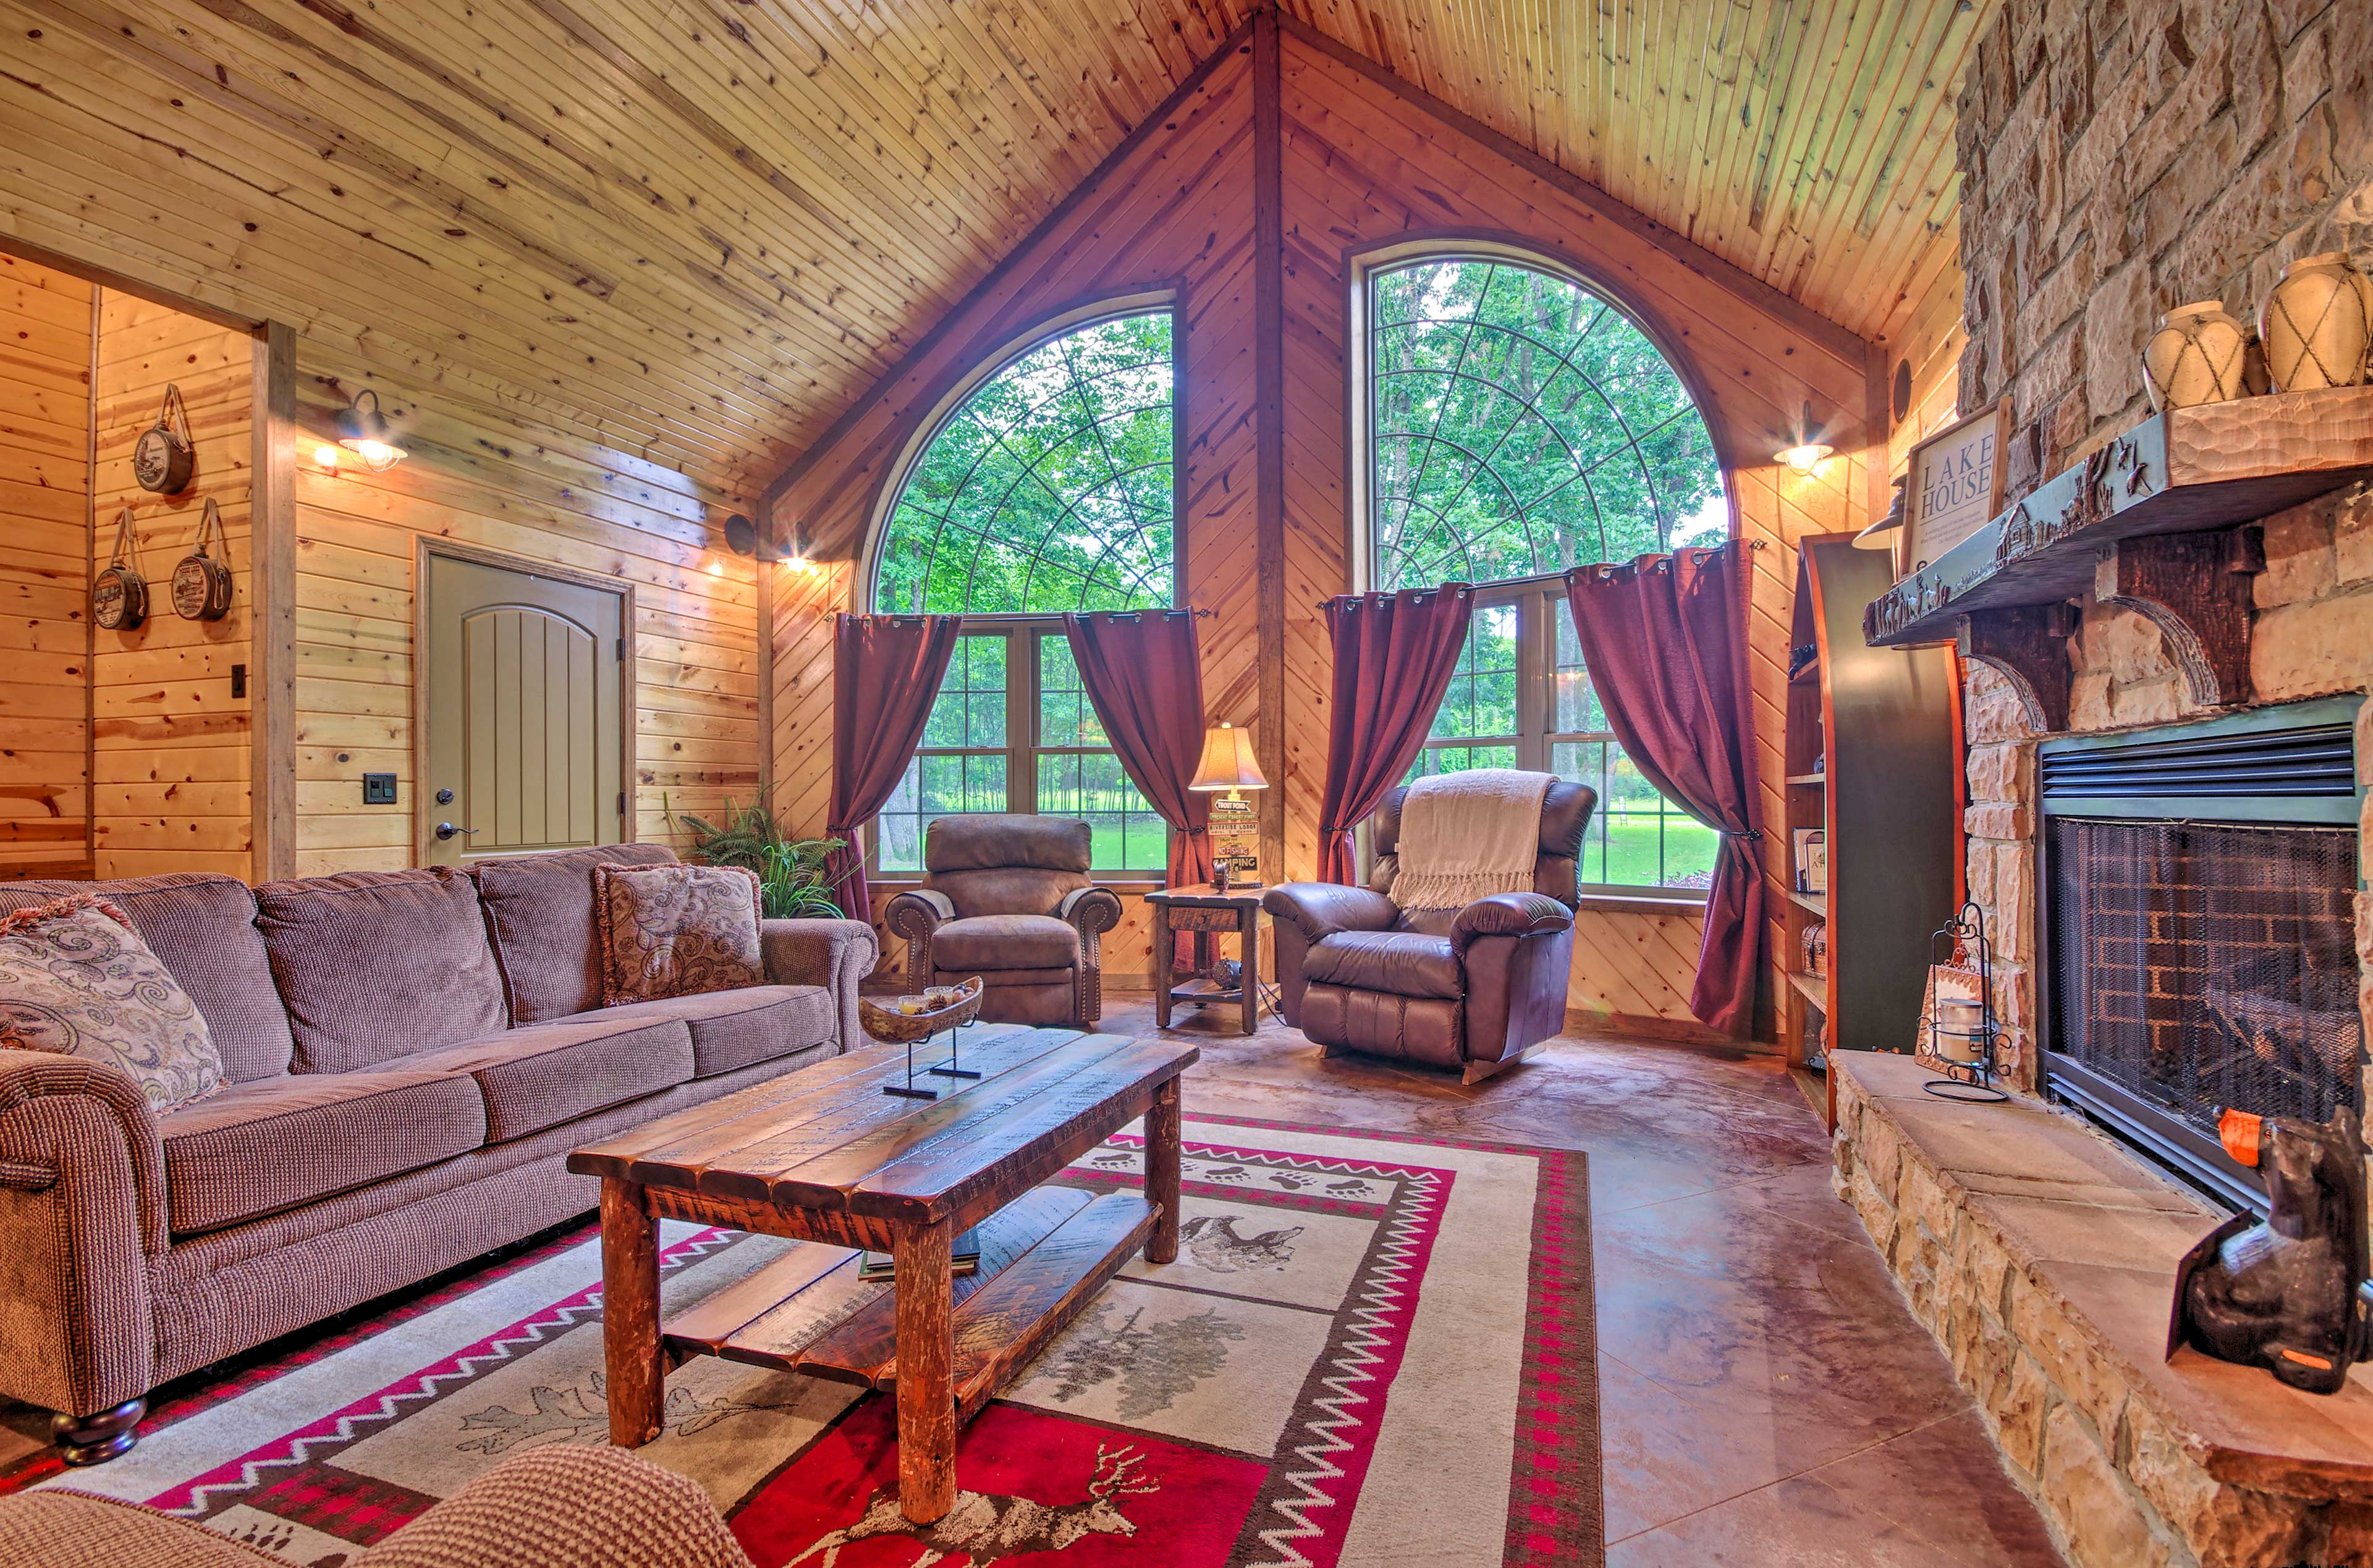 Get a view of the lush greenery while enjoying country-chic decor.